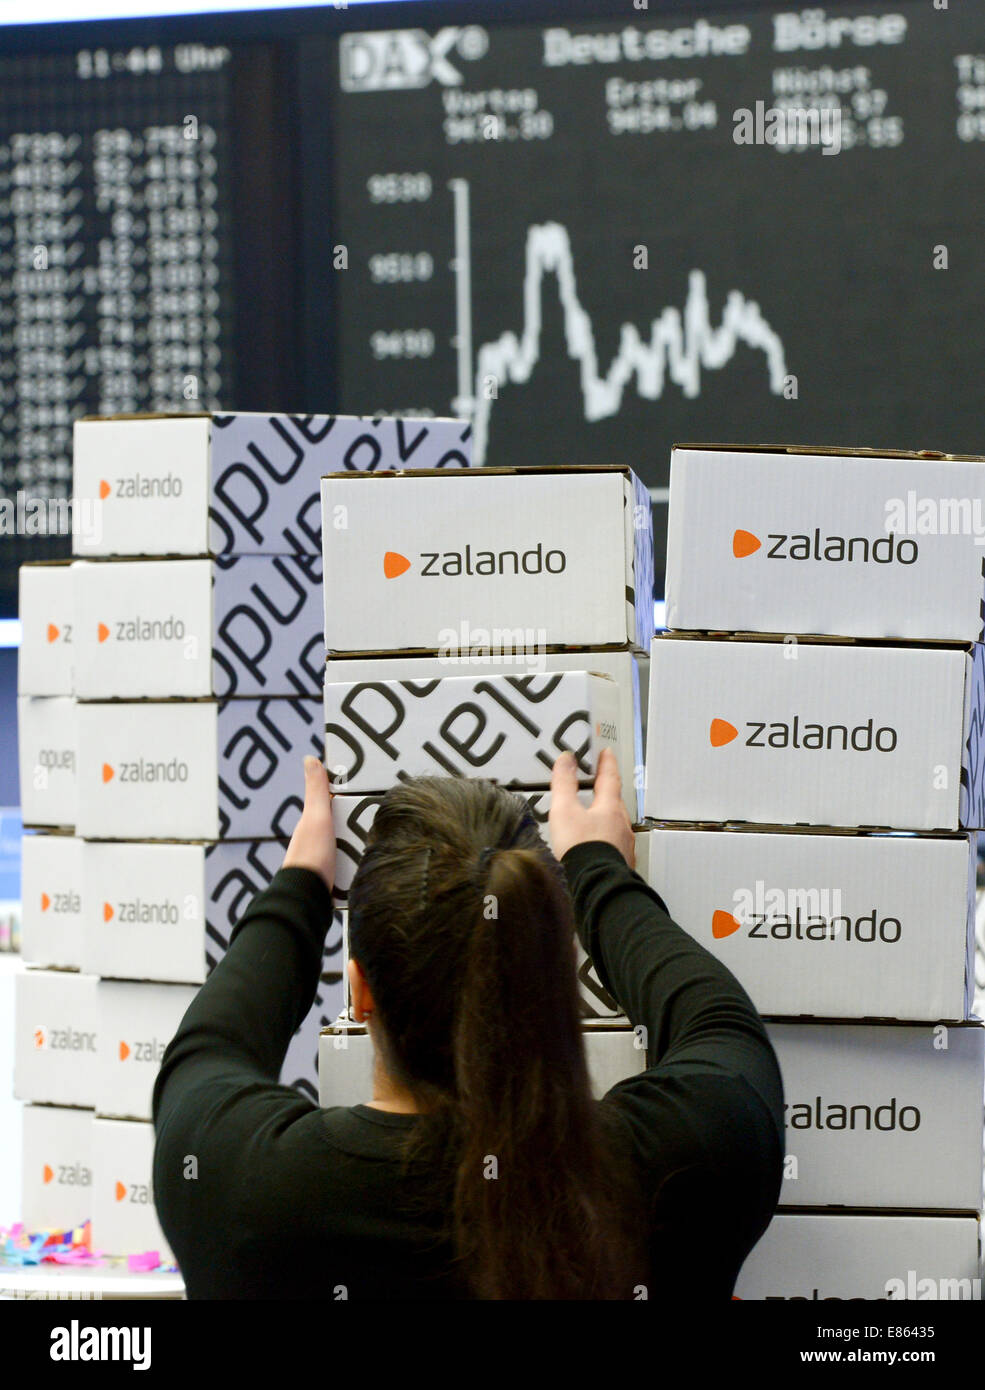 Zalando boxes stand in front of the DAX display panel at the Frankfurt stock exchange during the stock market launch Stock Photo